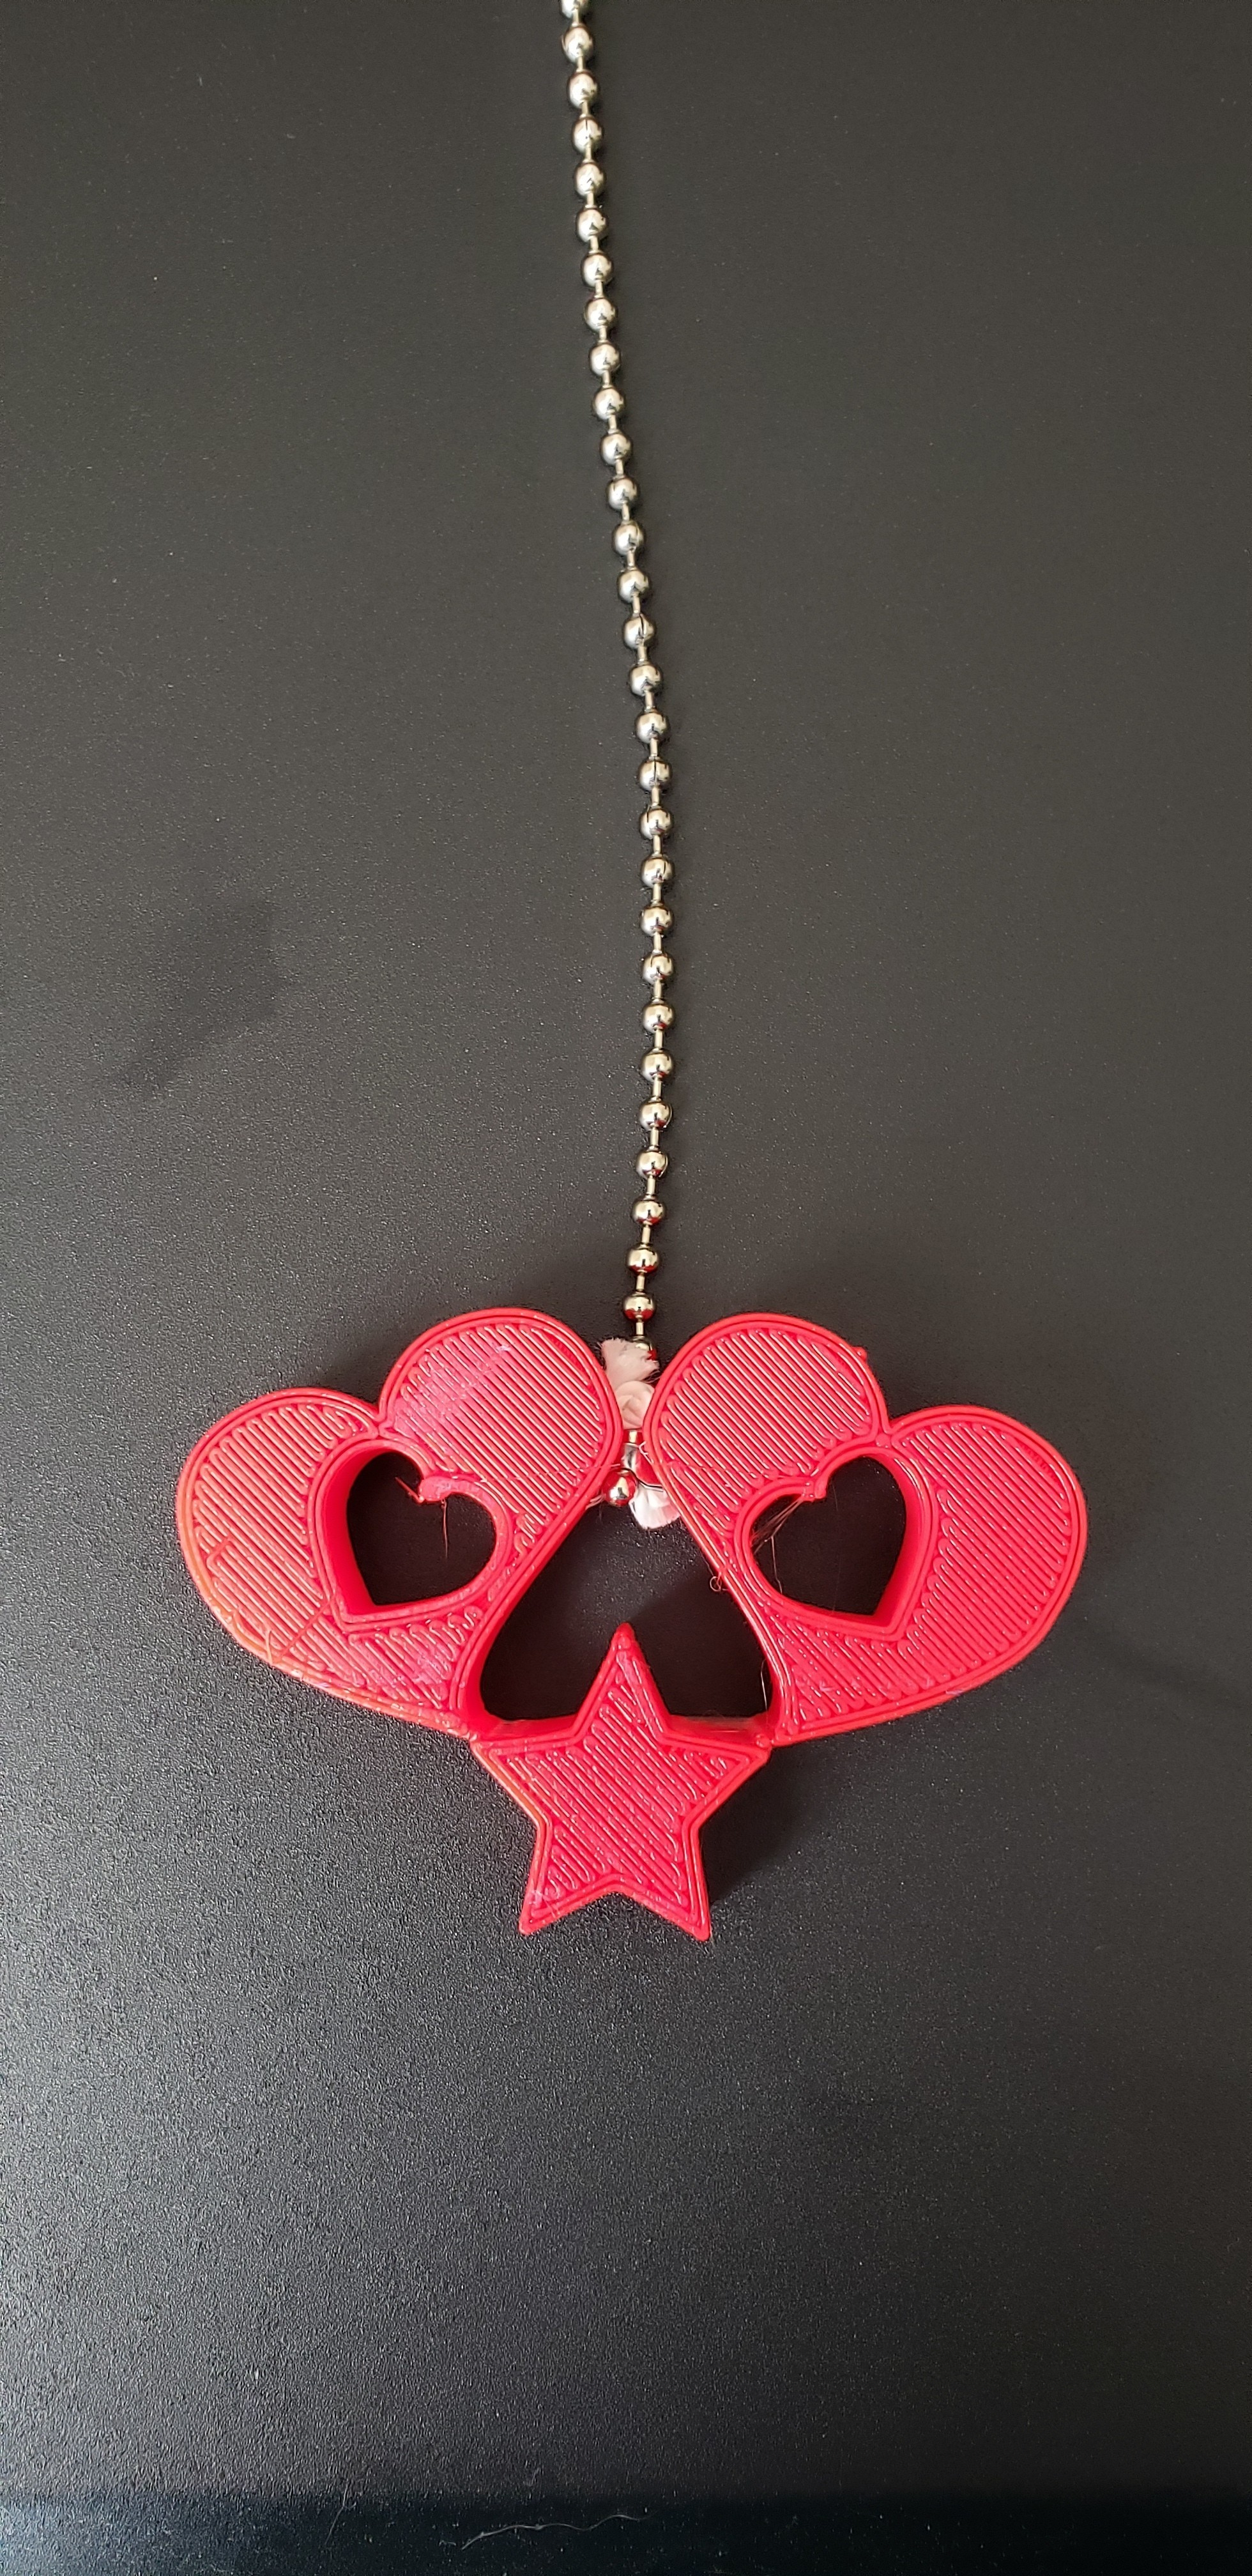 heart2 (1).jpg Download free STL file 2 Hearts and a star light pull • Model to 3D print, ED2014